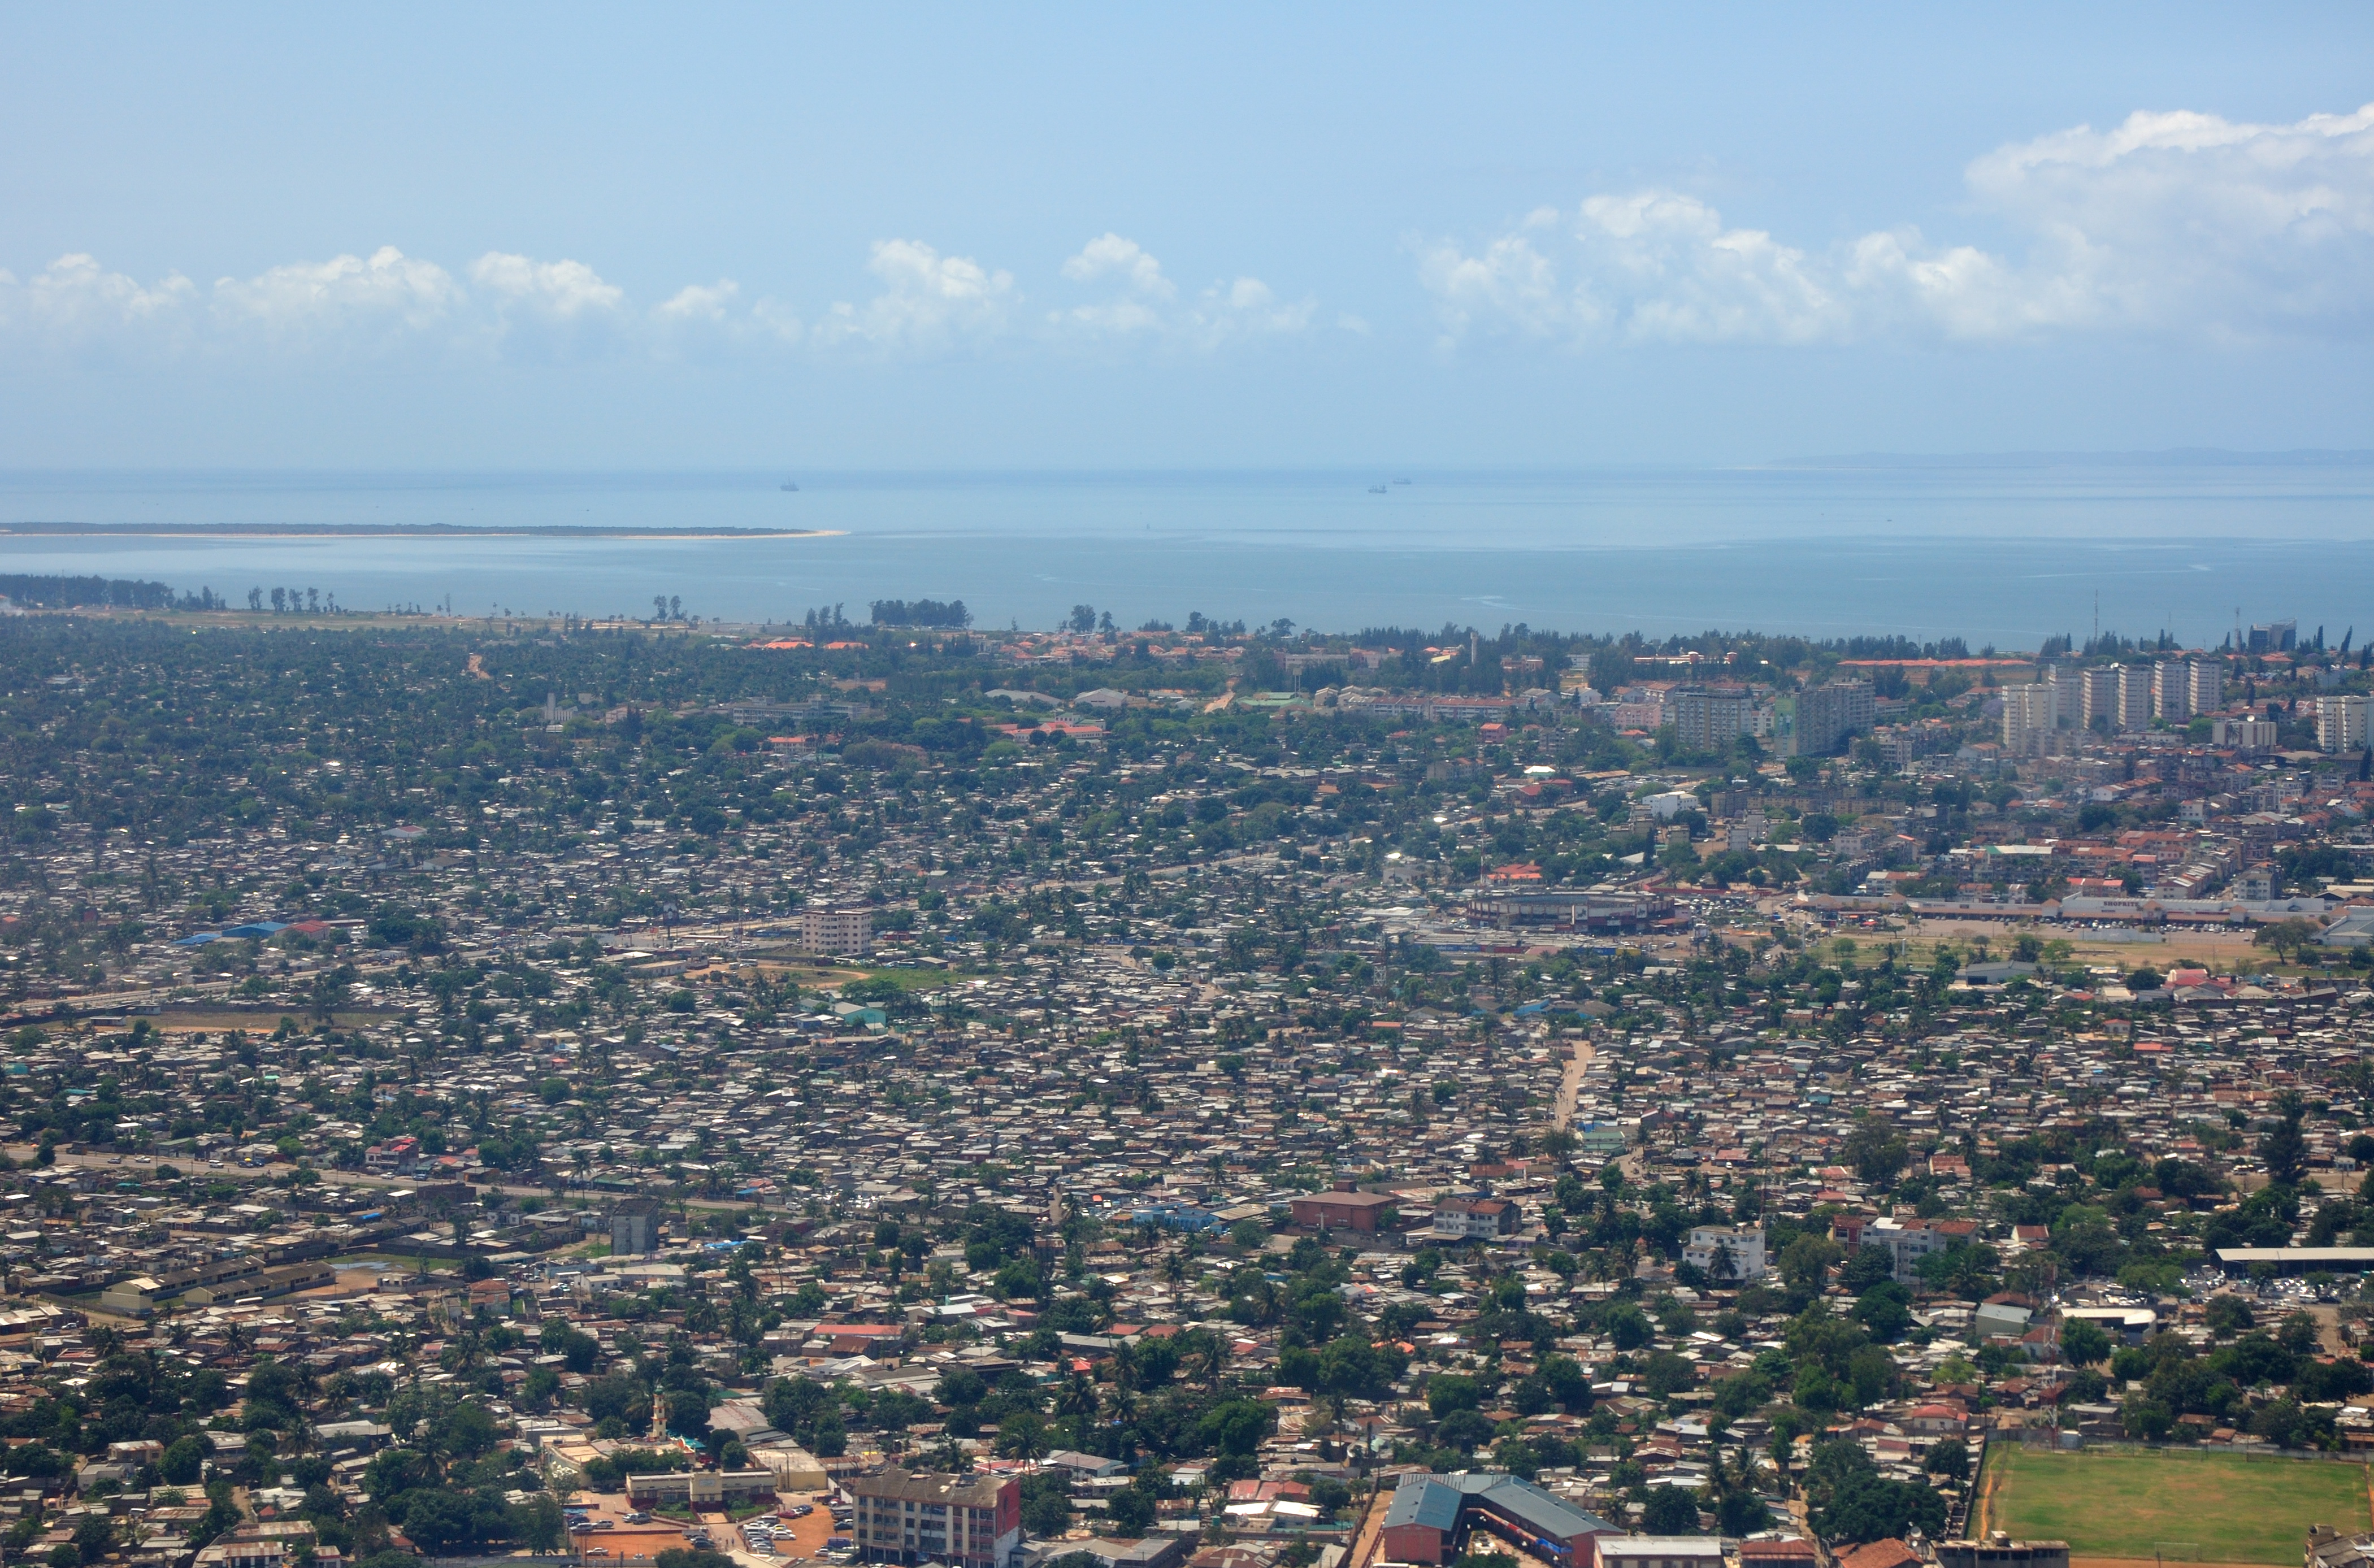 dating maputo mozambique Book your tickets online for the top things to do in maputo, mozambique on tripadvisor: see 2,900 traveler reviews and photos of maputo.